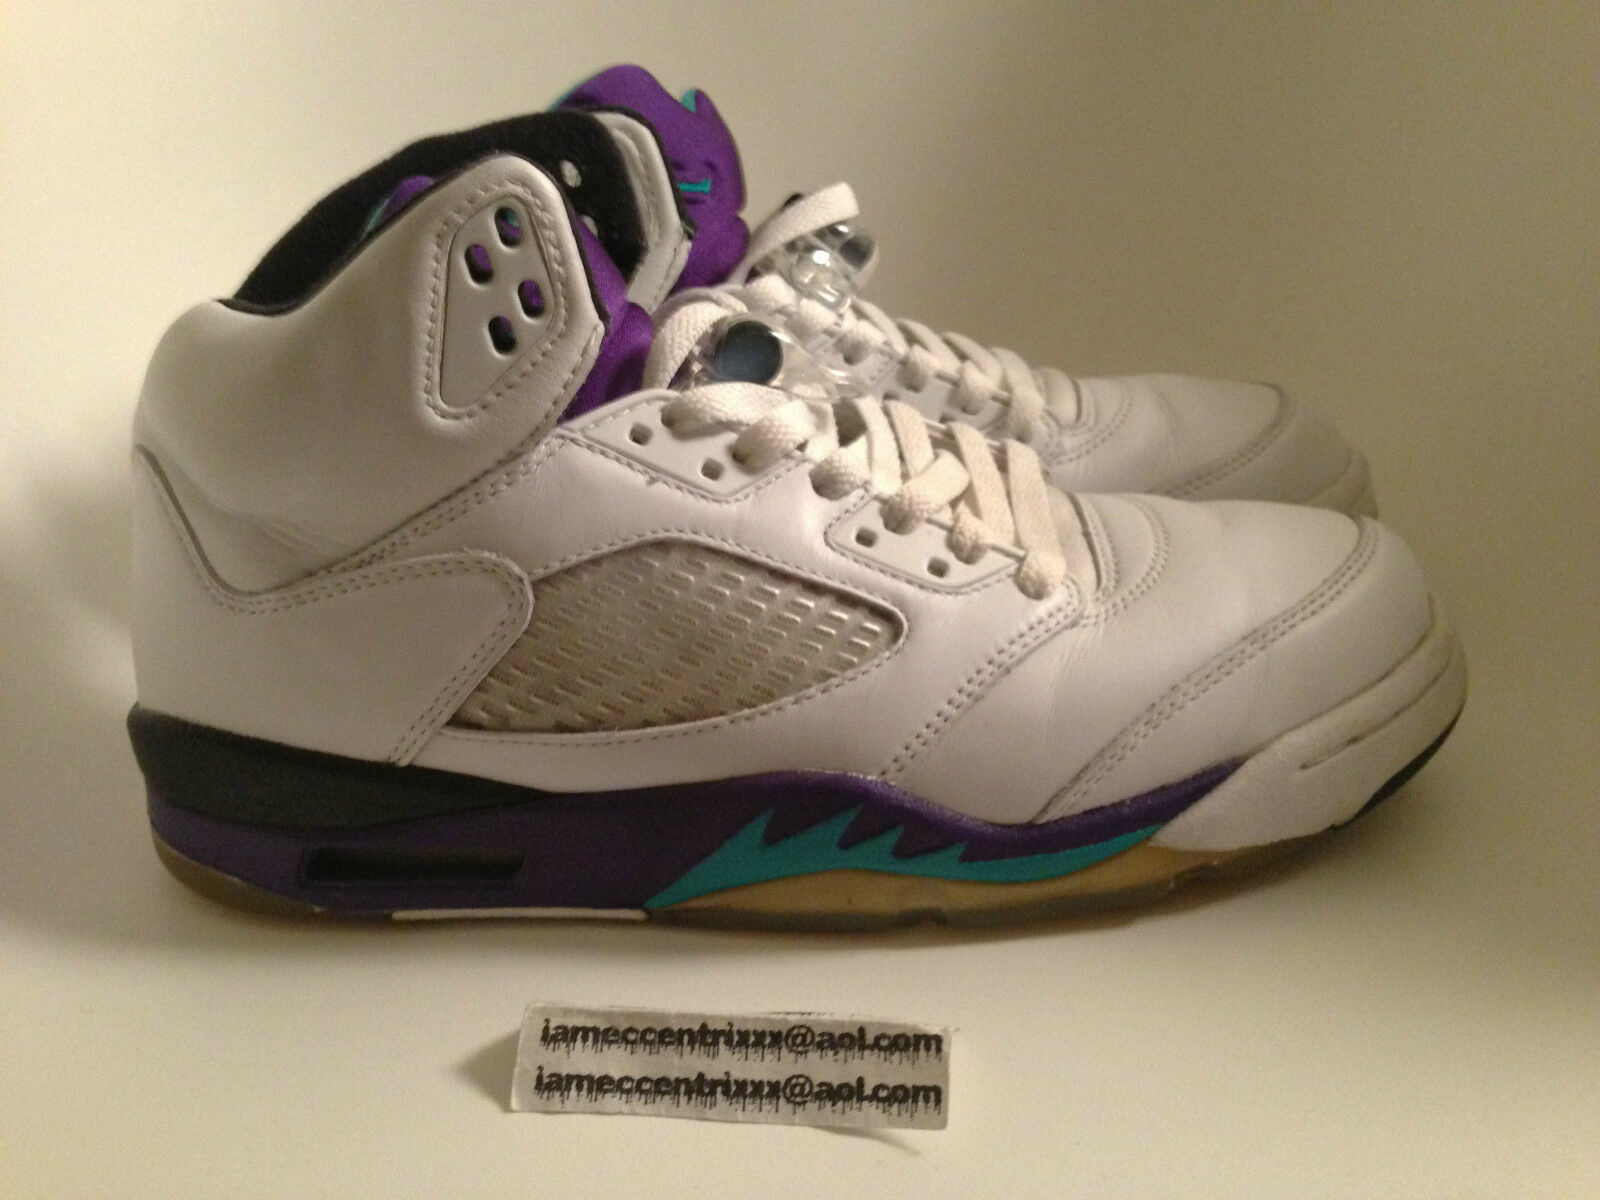 NIKE Air Jordan V 5 LS Retro Grape Grapes DMP US 8 NEW GMP Laser BIN III 1 2 3 4